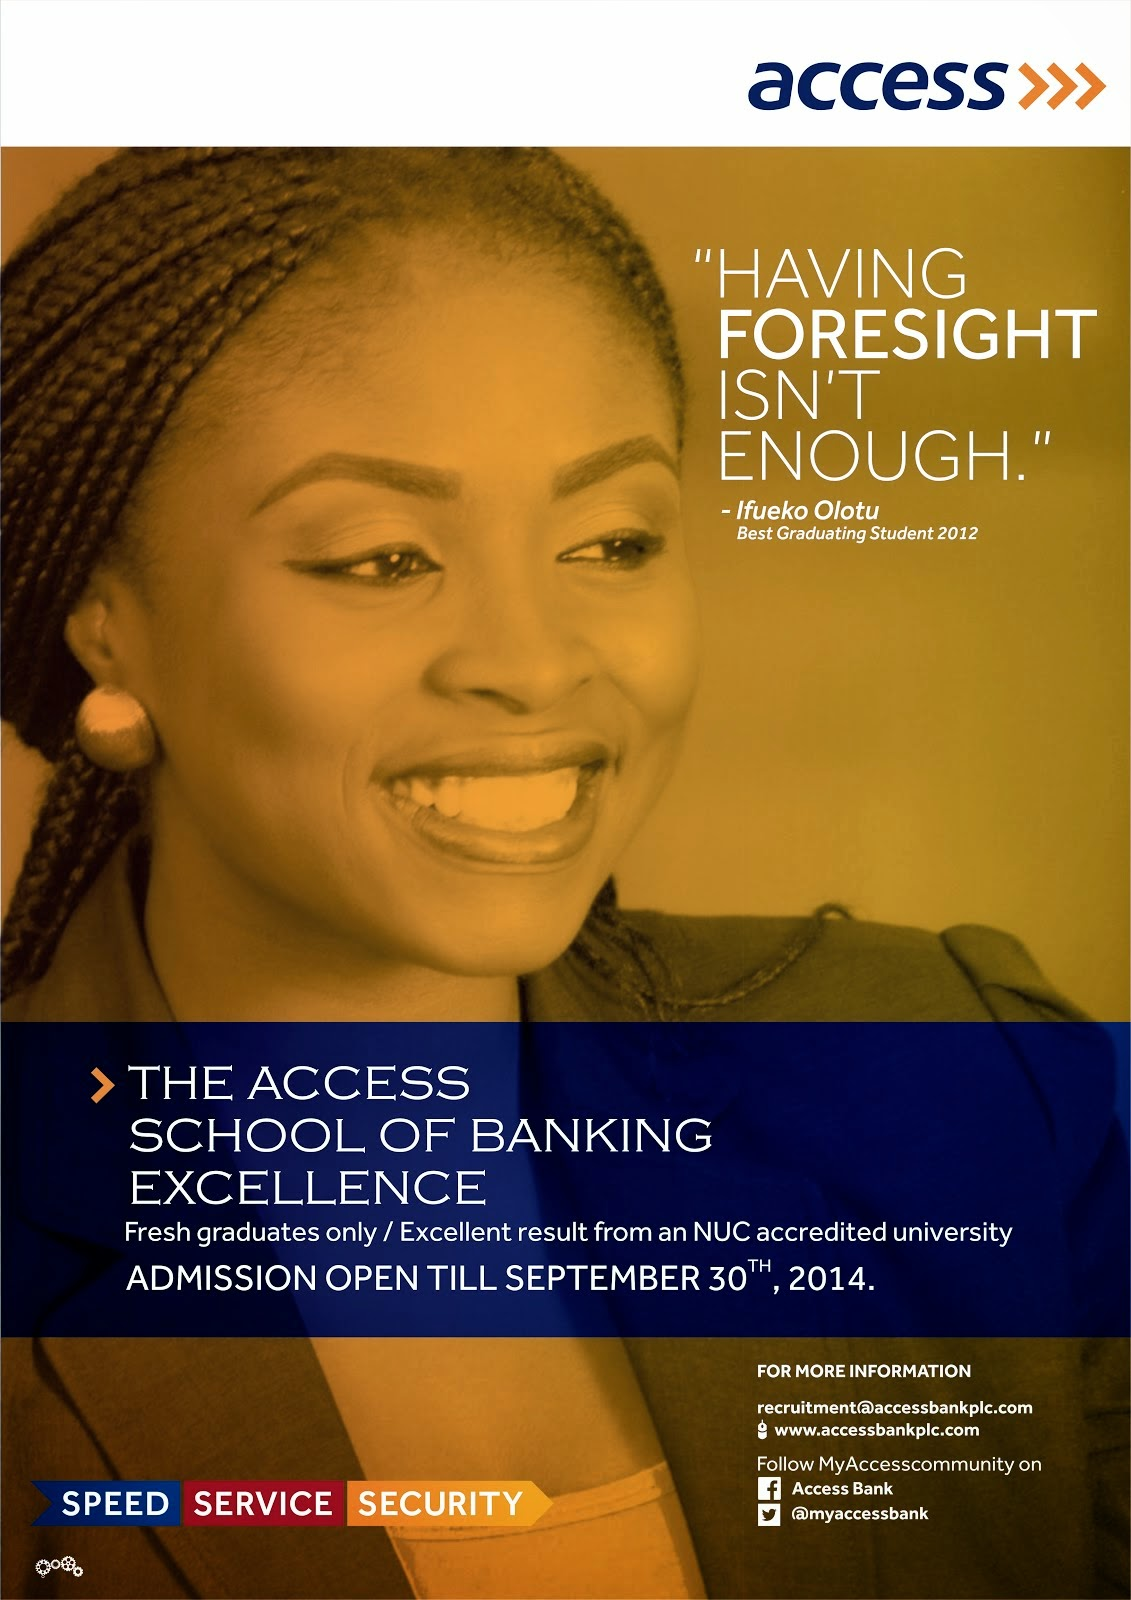 ACCESS BANK RECRUITMENT DRIVE